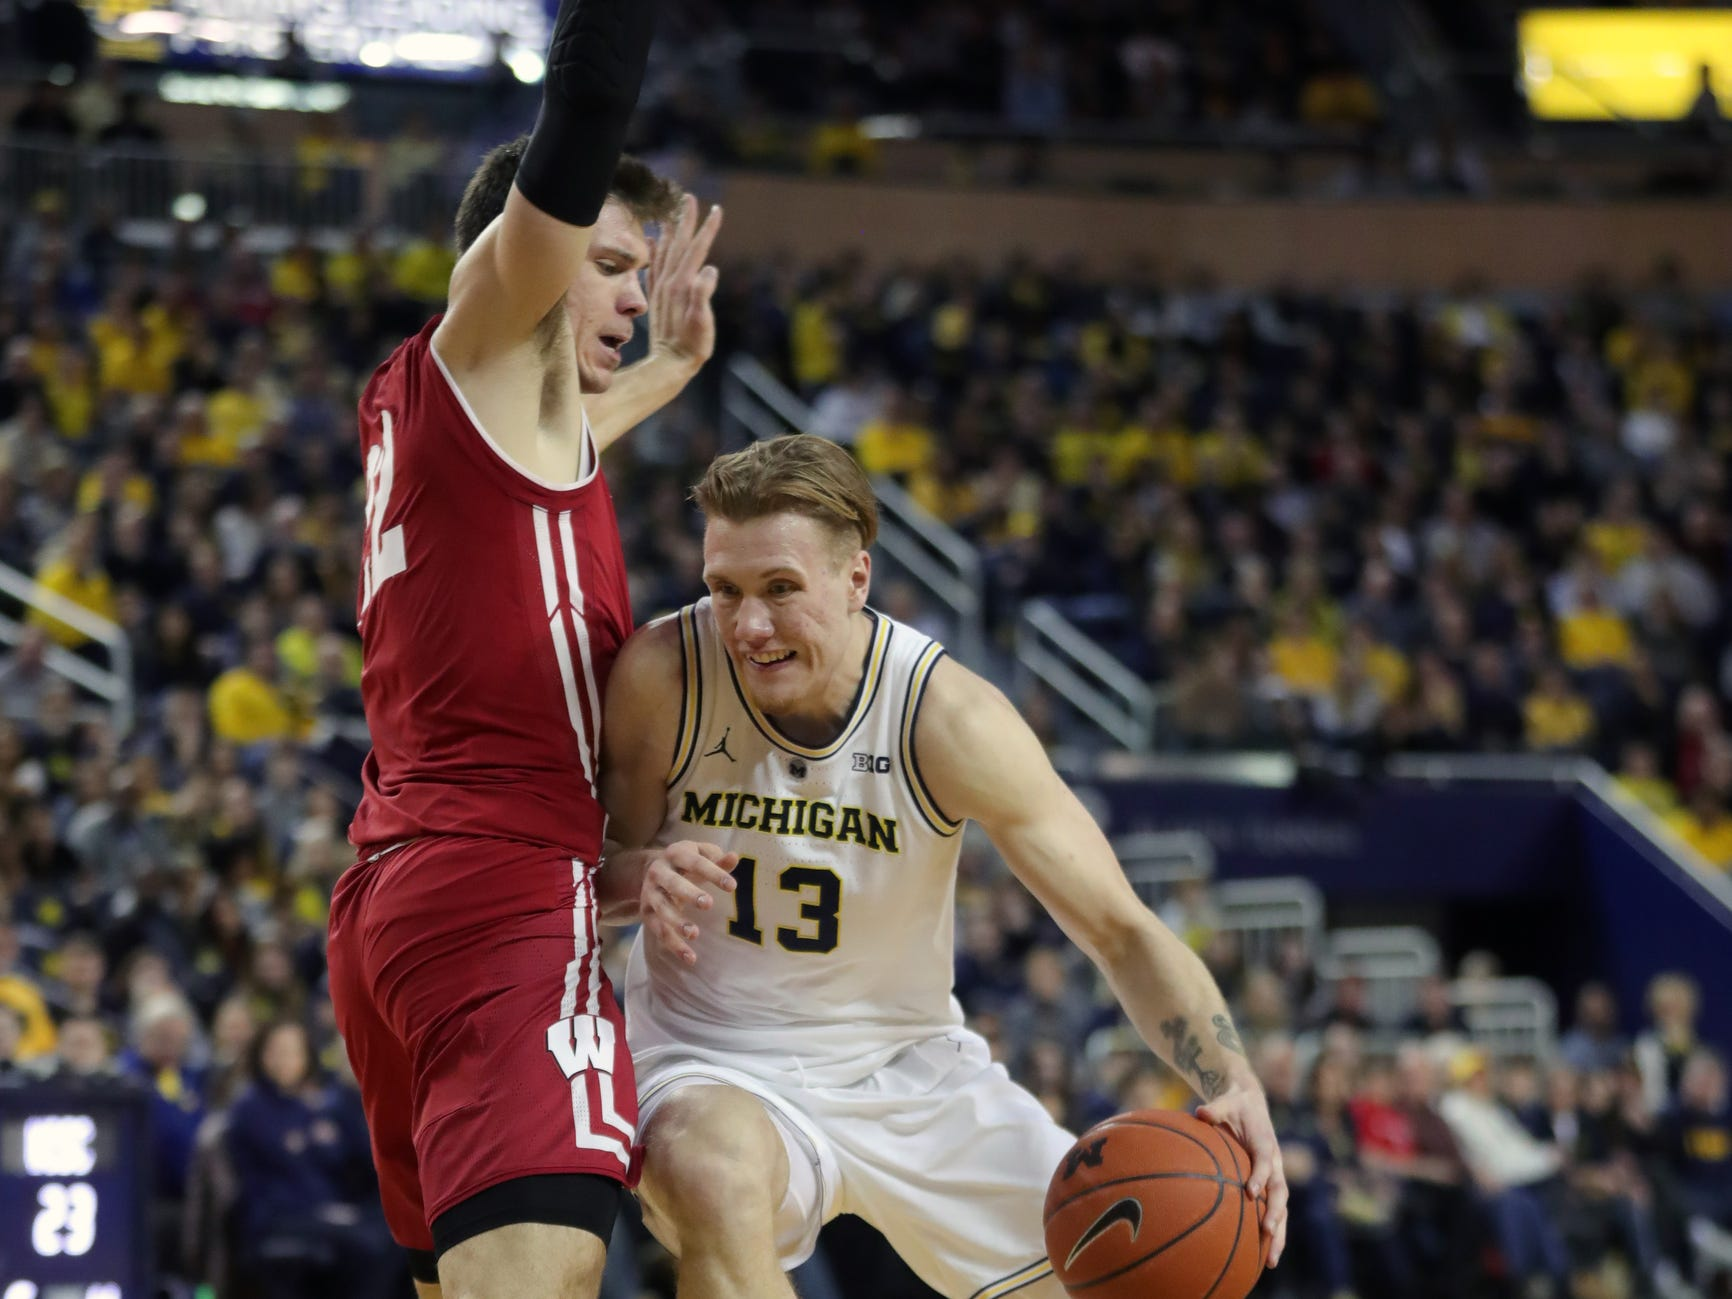 Michigan forward Ignas Brazdeikis drives against Wisconsin forward Ethan Happ during the first half Saturday, Feb. 9, 2019 at Crisler Center in Ann Arbor.